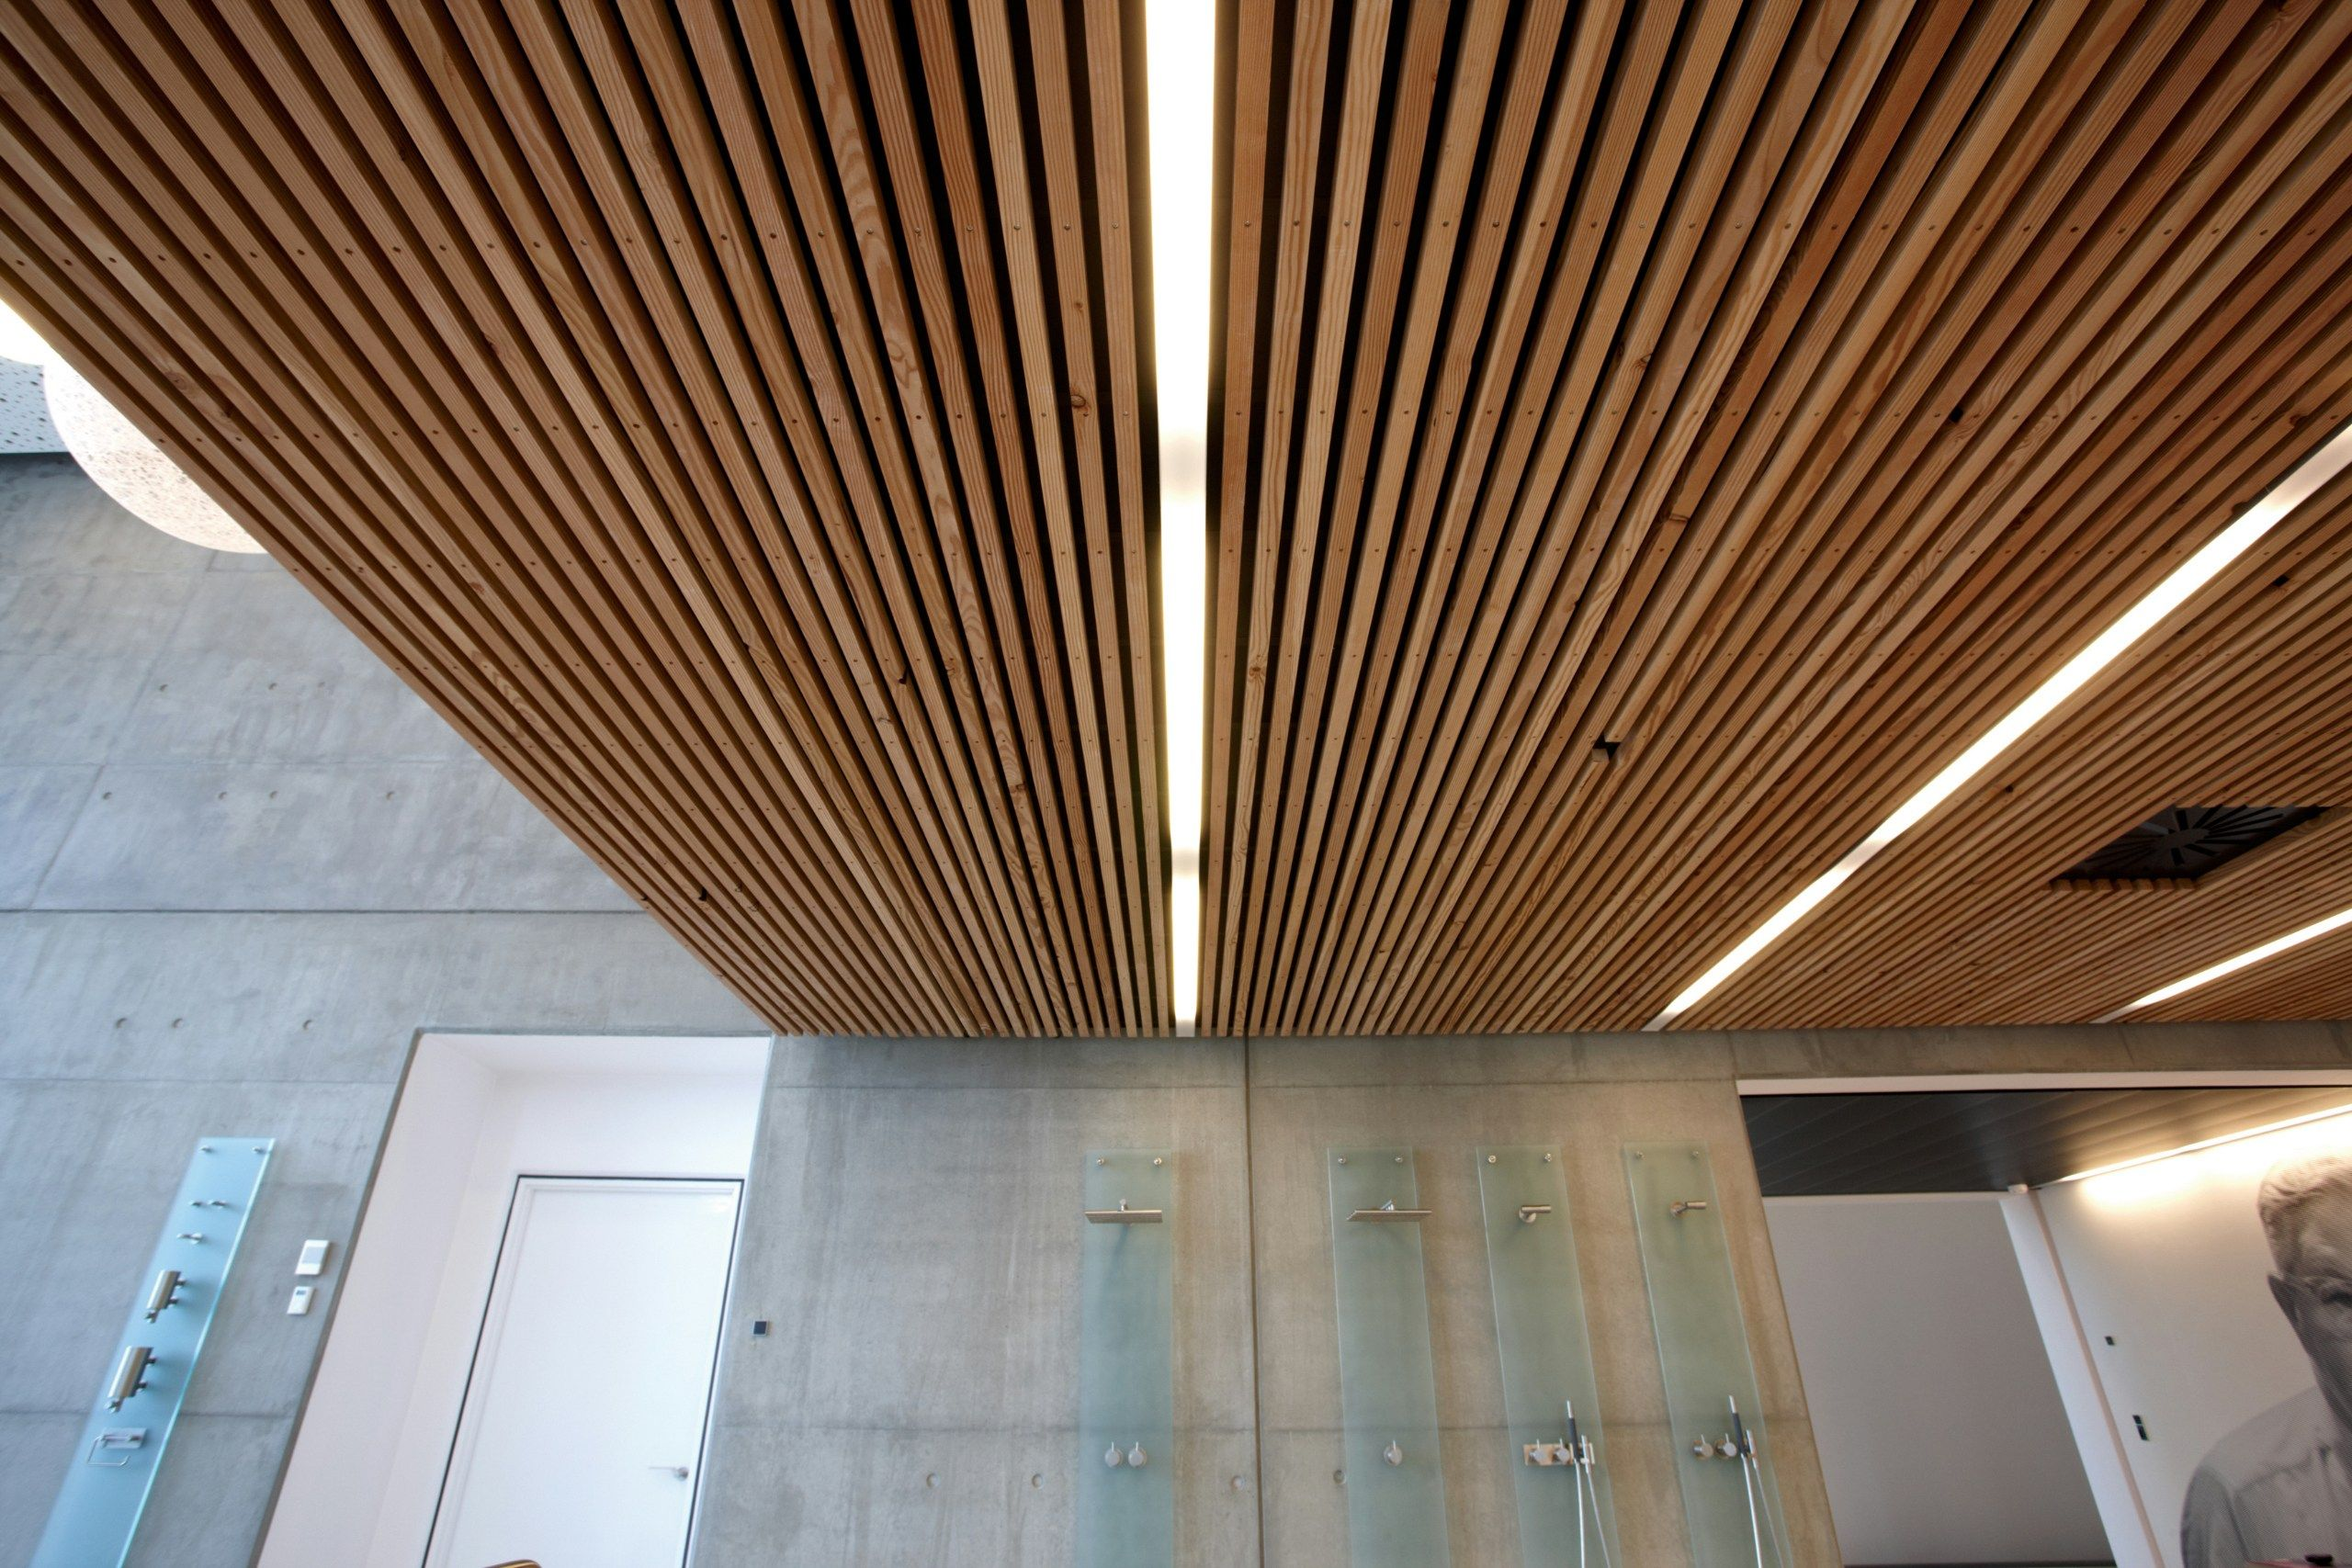 Wood Ceiling Treatments Ceiling Tiles With Wood Effect Dinesen Ceiling By Dinesen